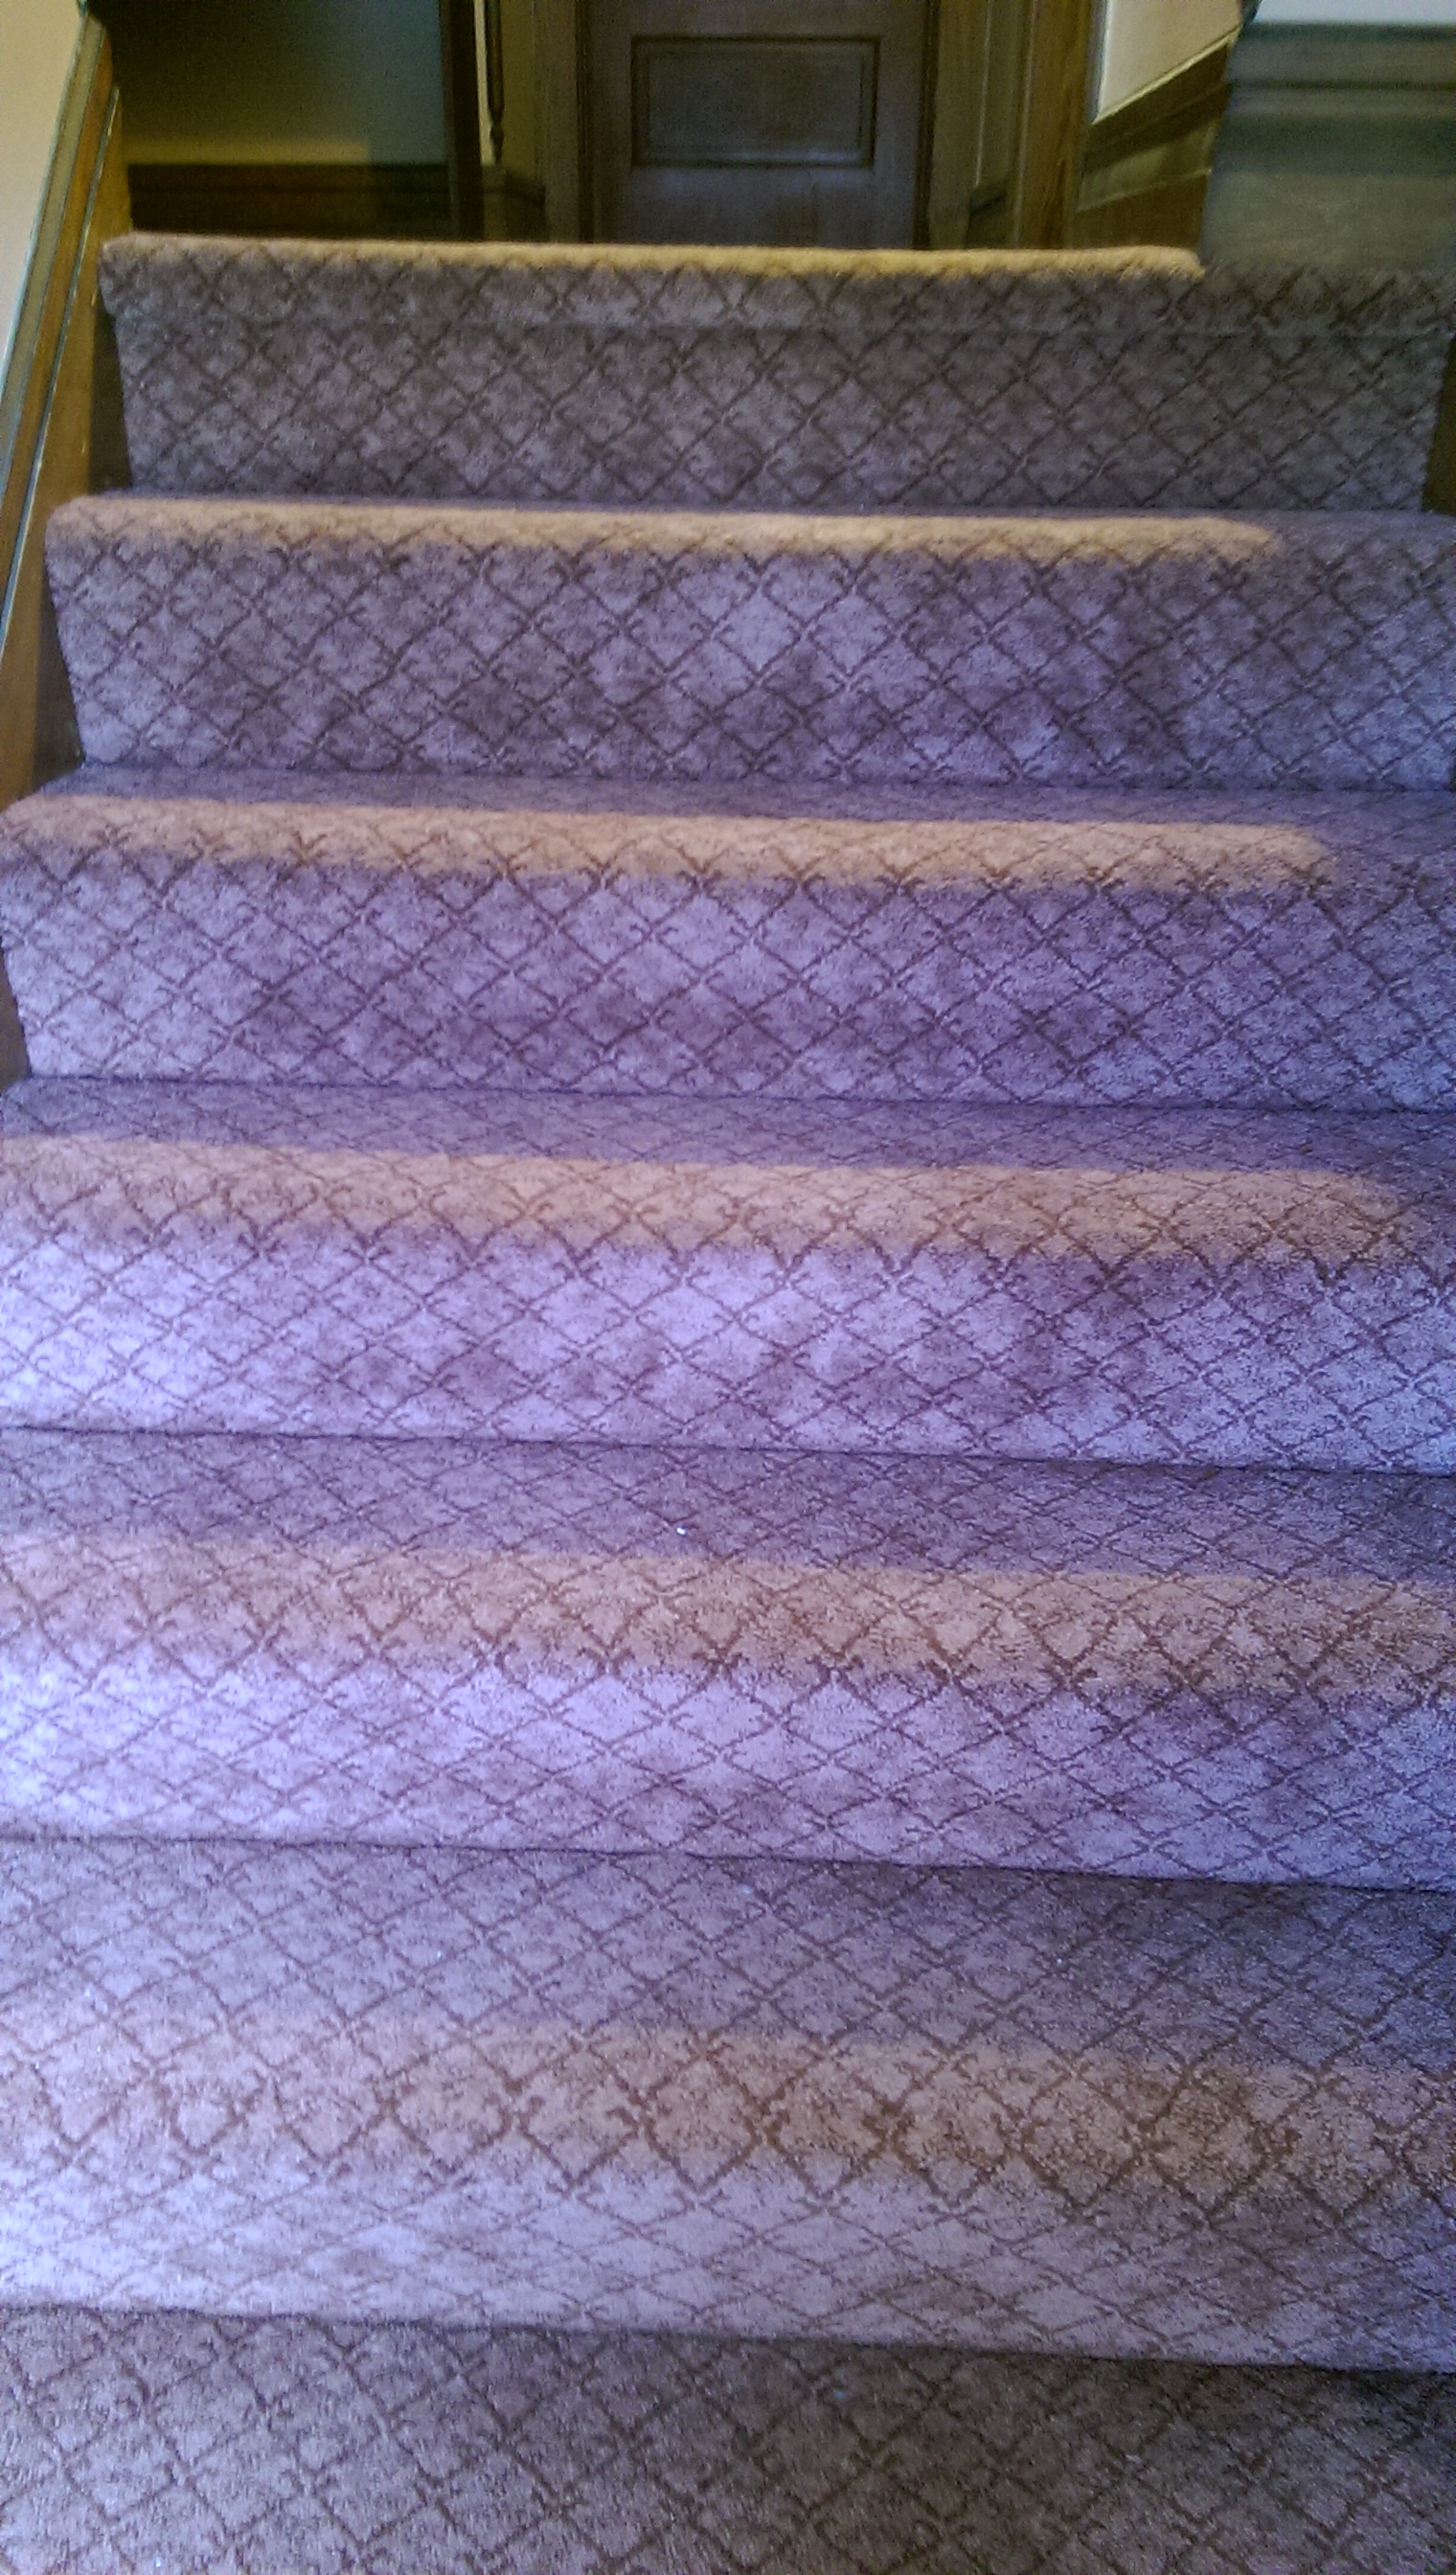 staircase-replaced-old-thread-bare-carpet-with-new-synthetic-blend